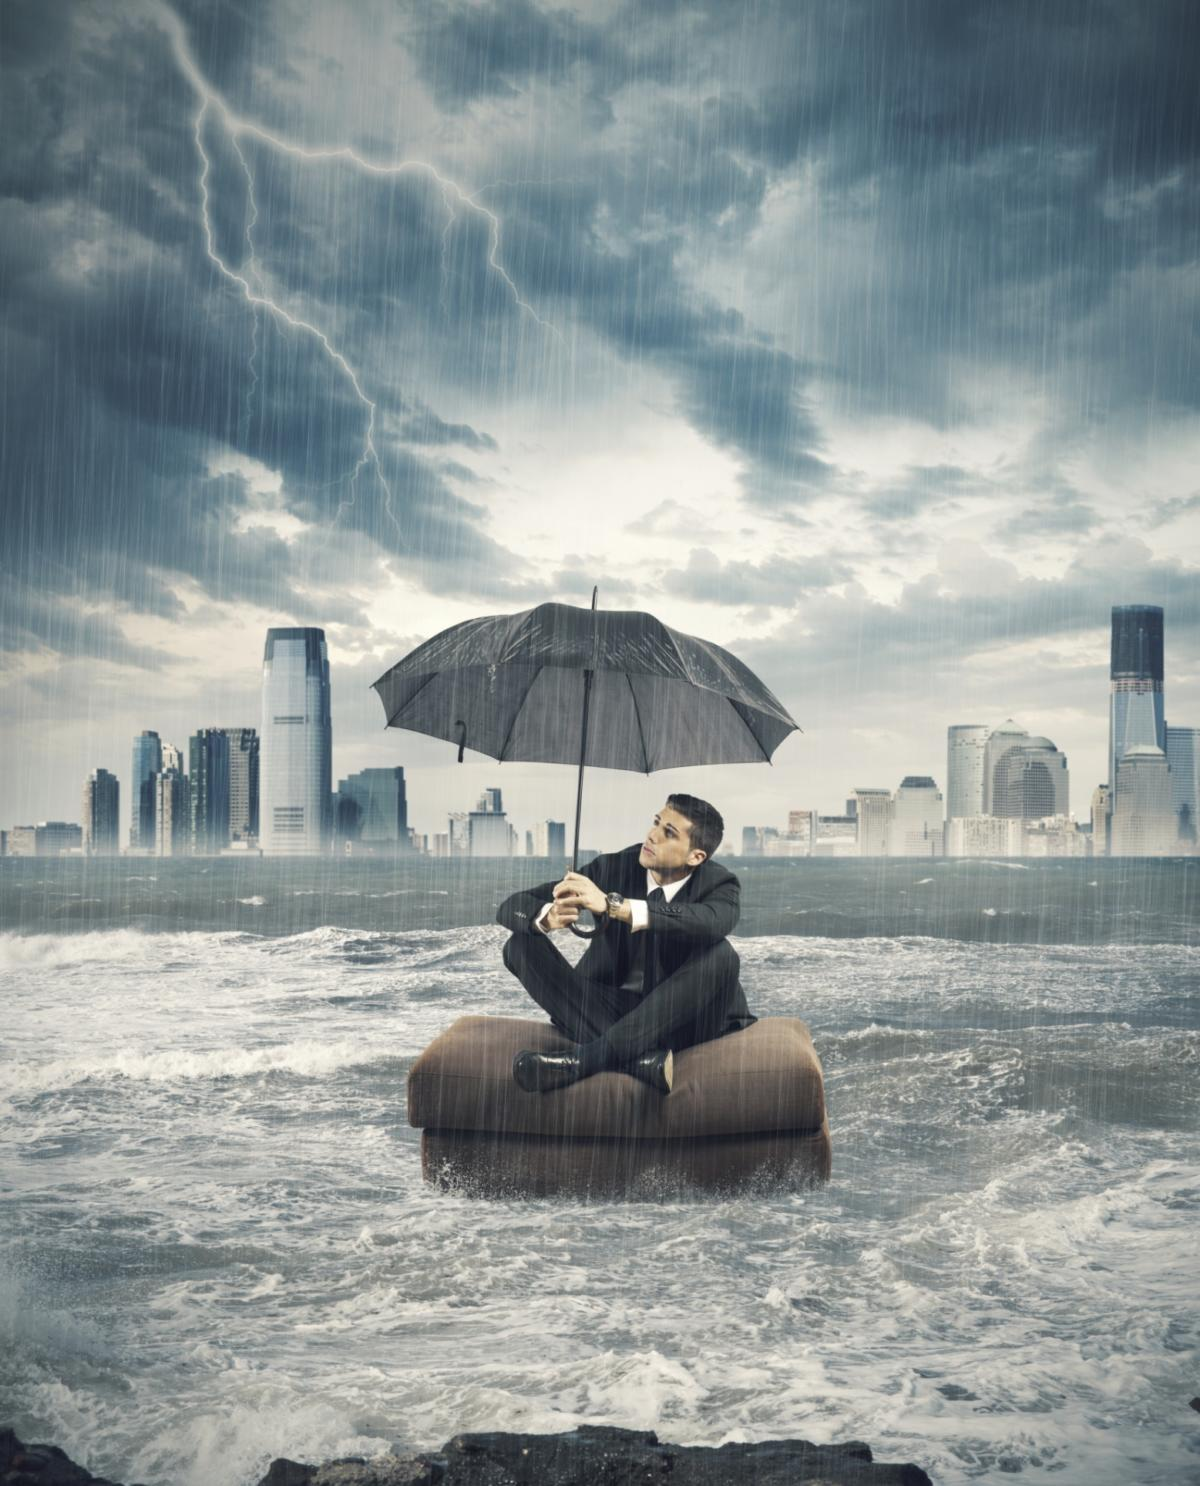 weather storm business climate adversity challenge rough